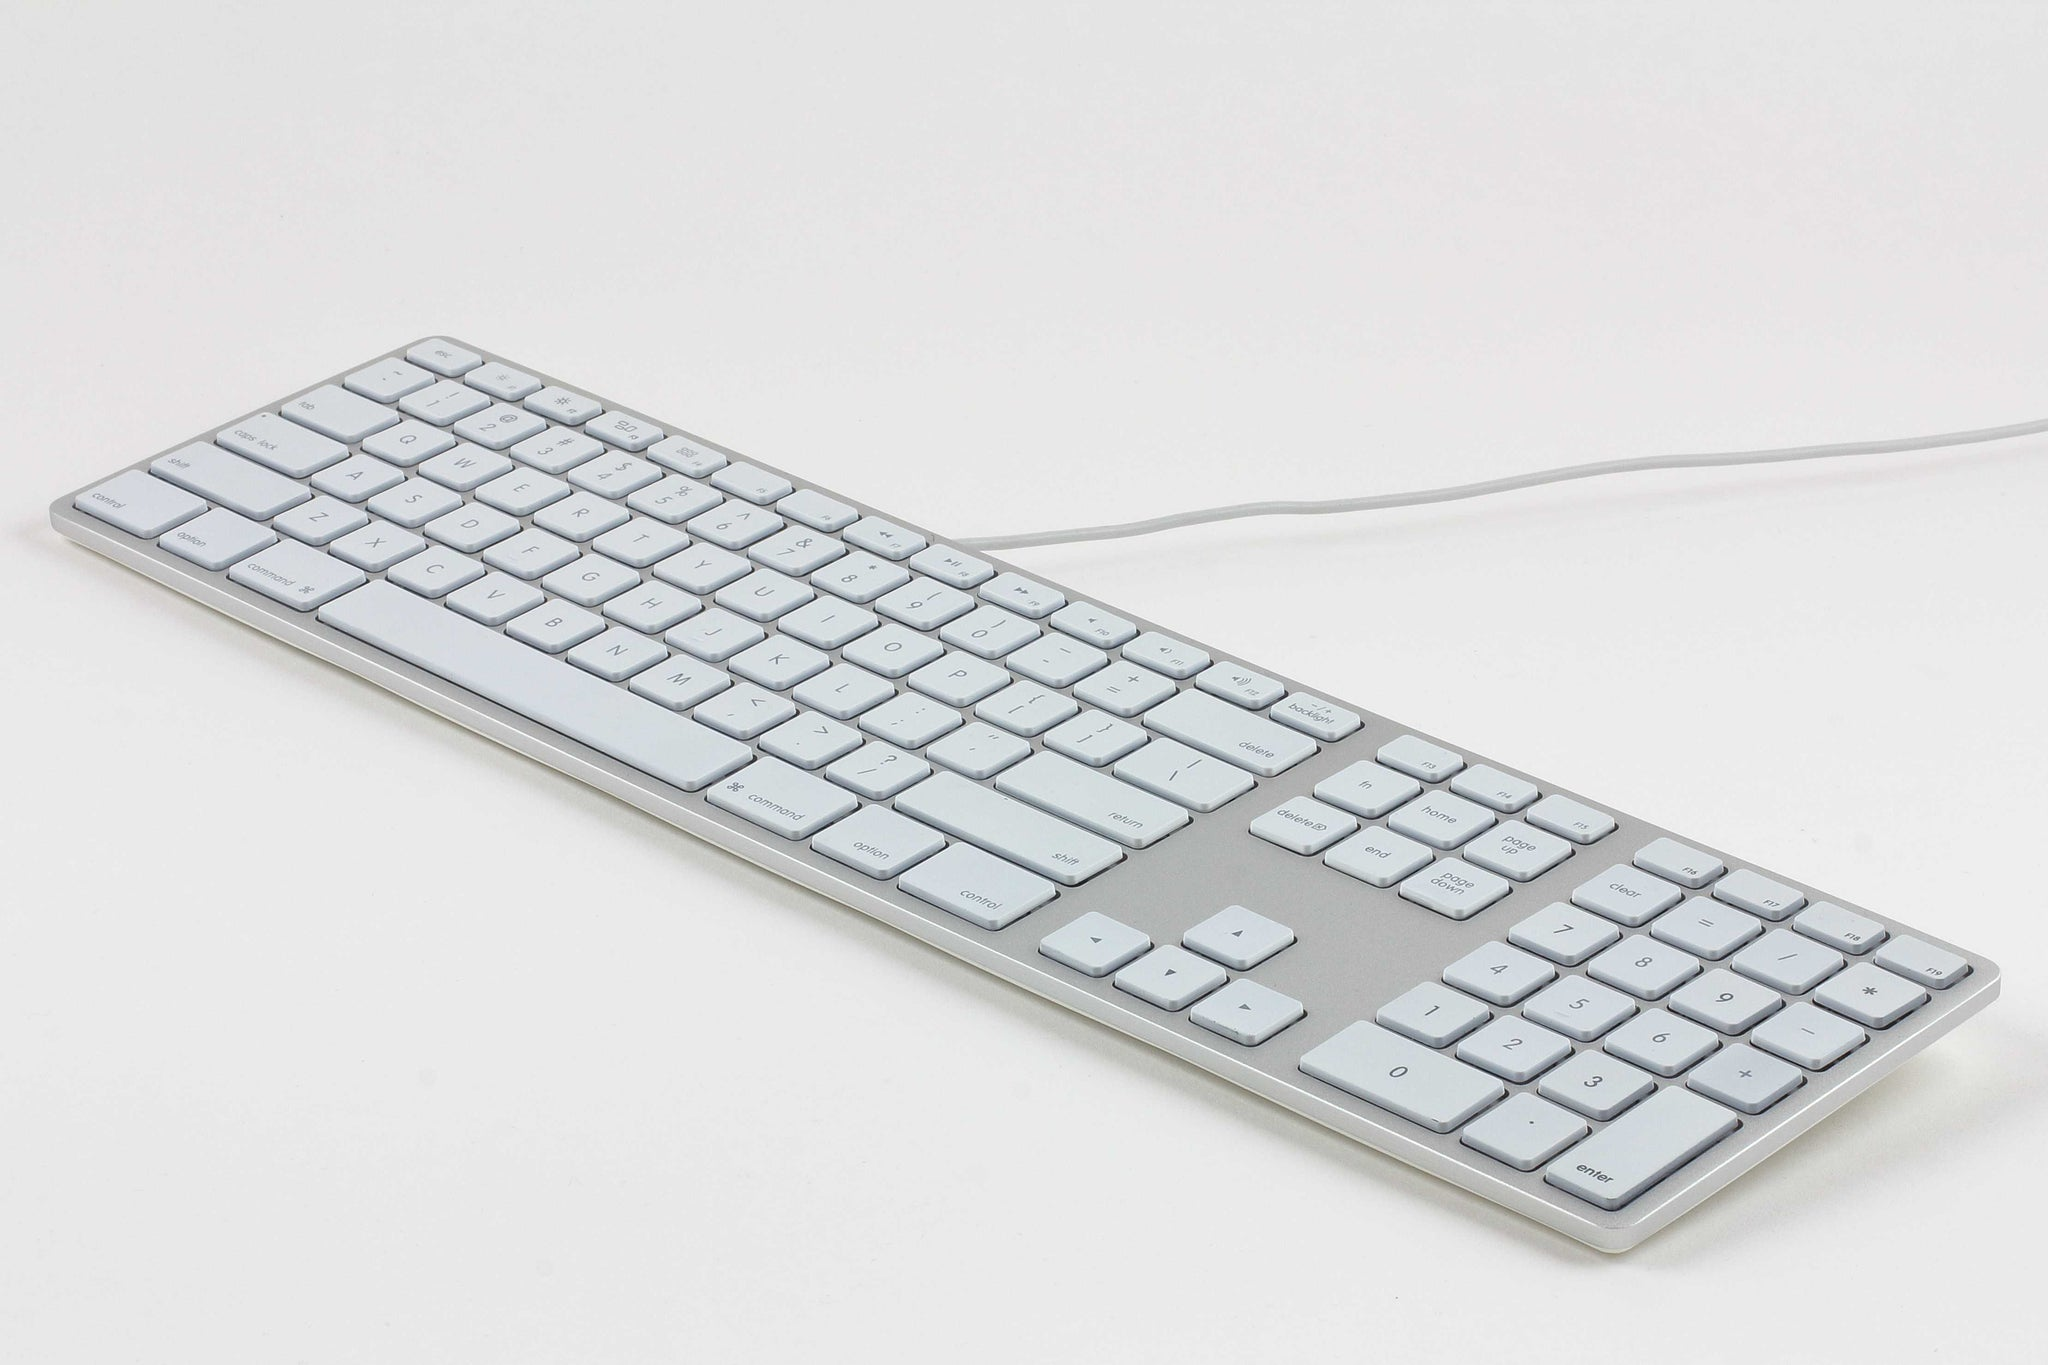 Podcast - RGB Backlit Wired Aluminum Keyboard